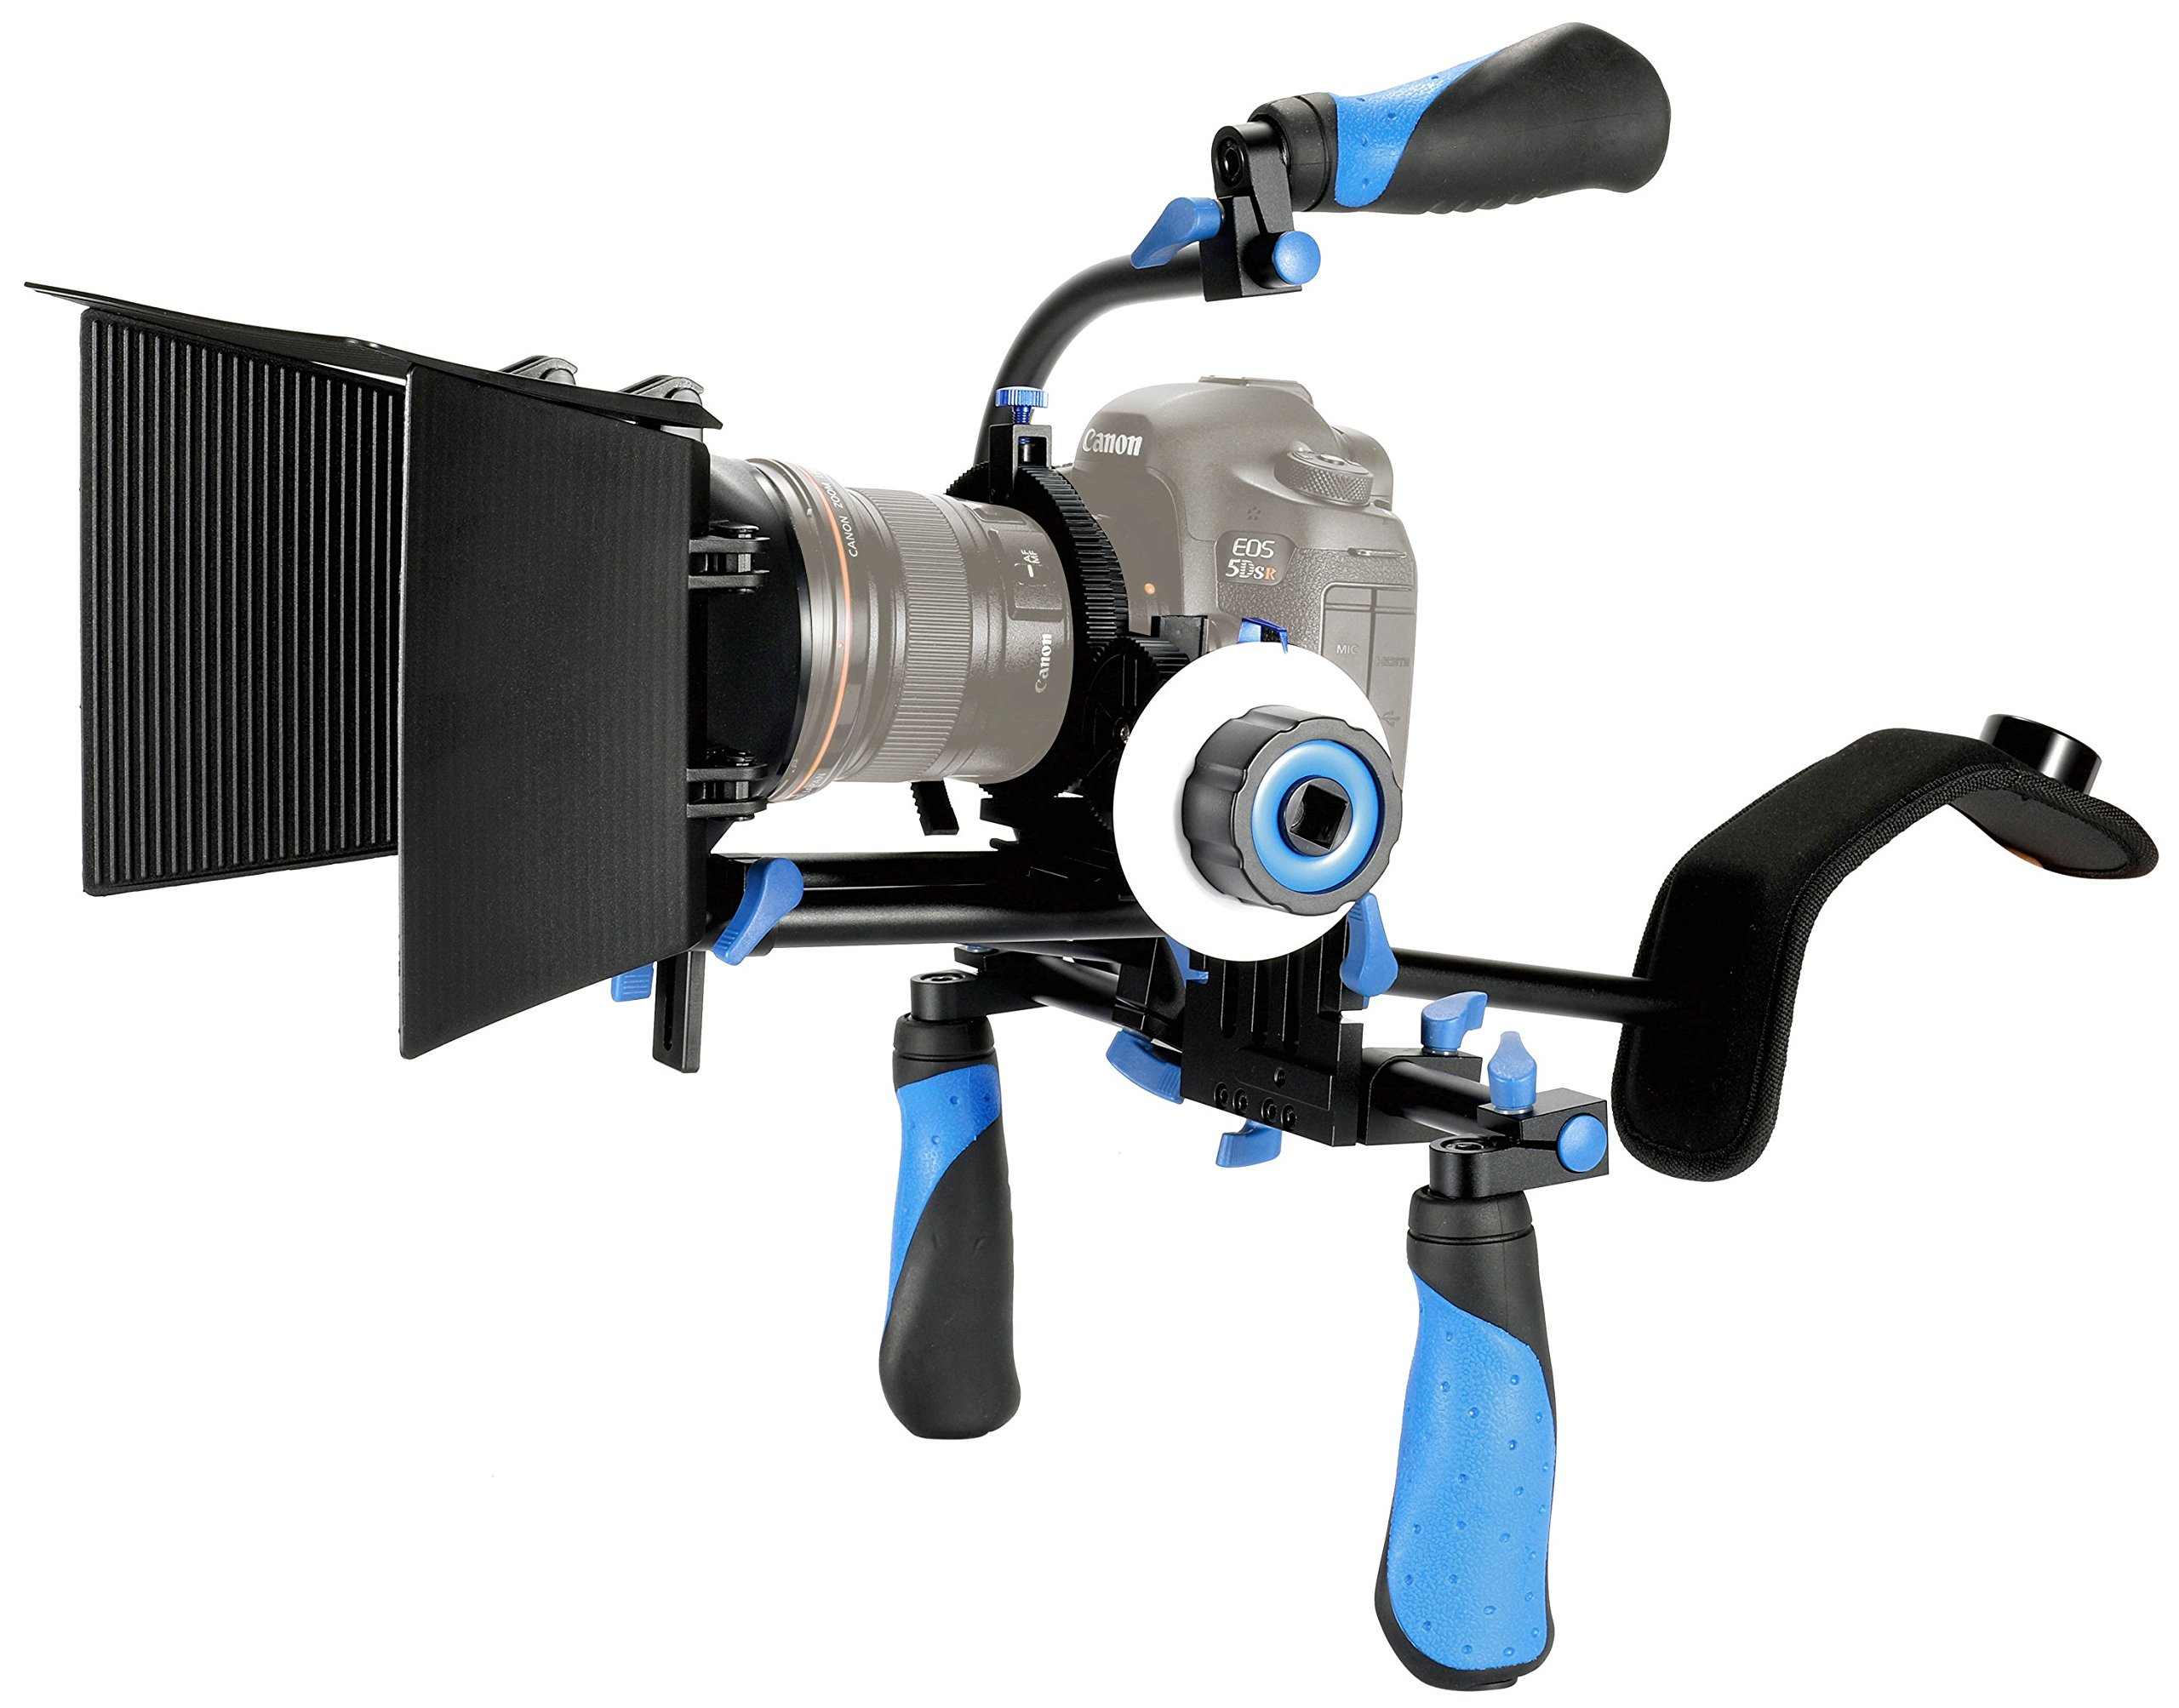 MARSRE DSLR Shoulder Rig Film Making Kit with Follow Focus, Matte Box, C-shape Mounting Bracket and Top Handle For All DSLR Video Cameras and DV Camcorders by MARSRE